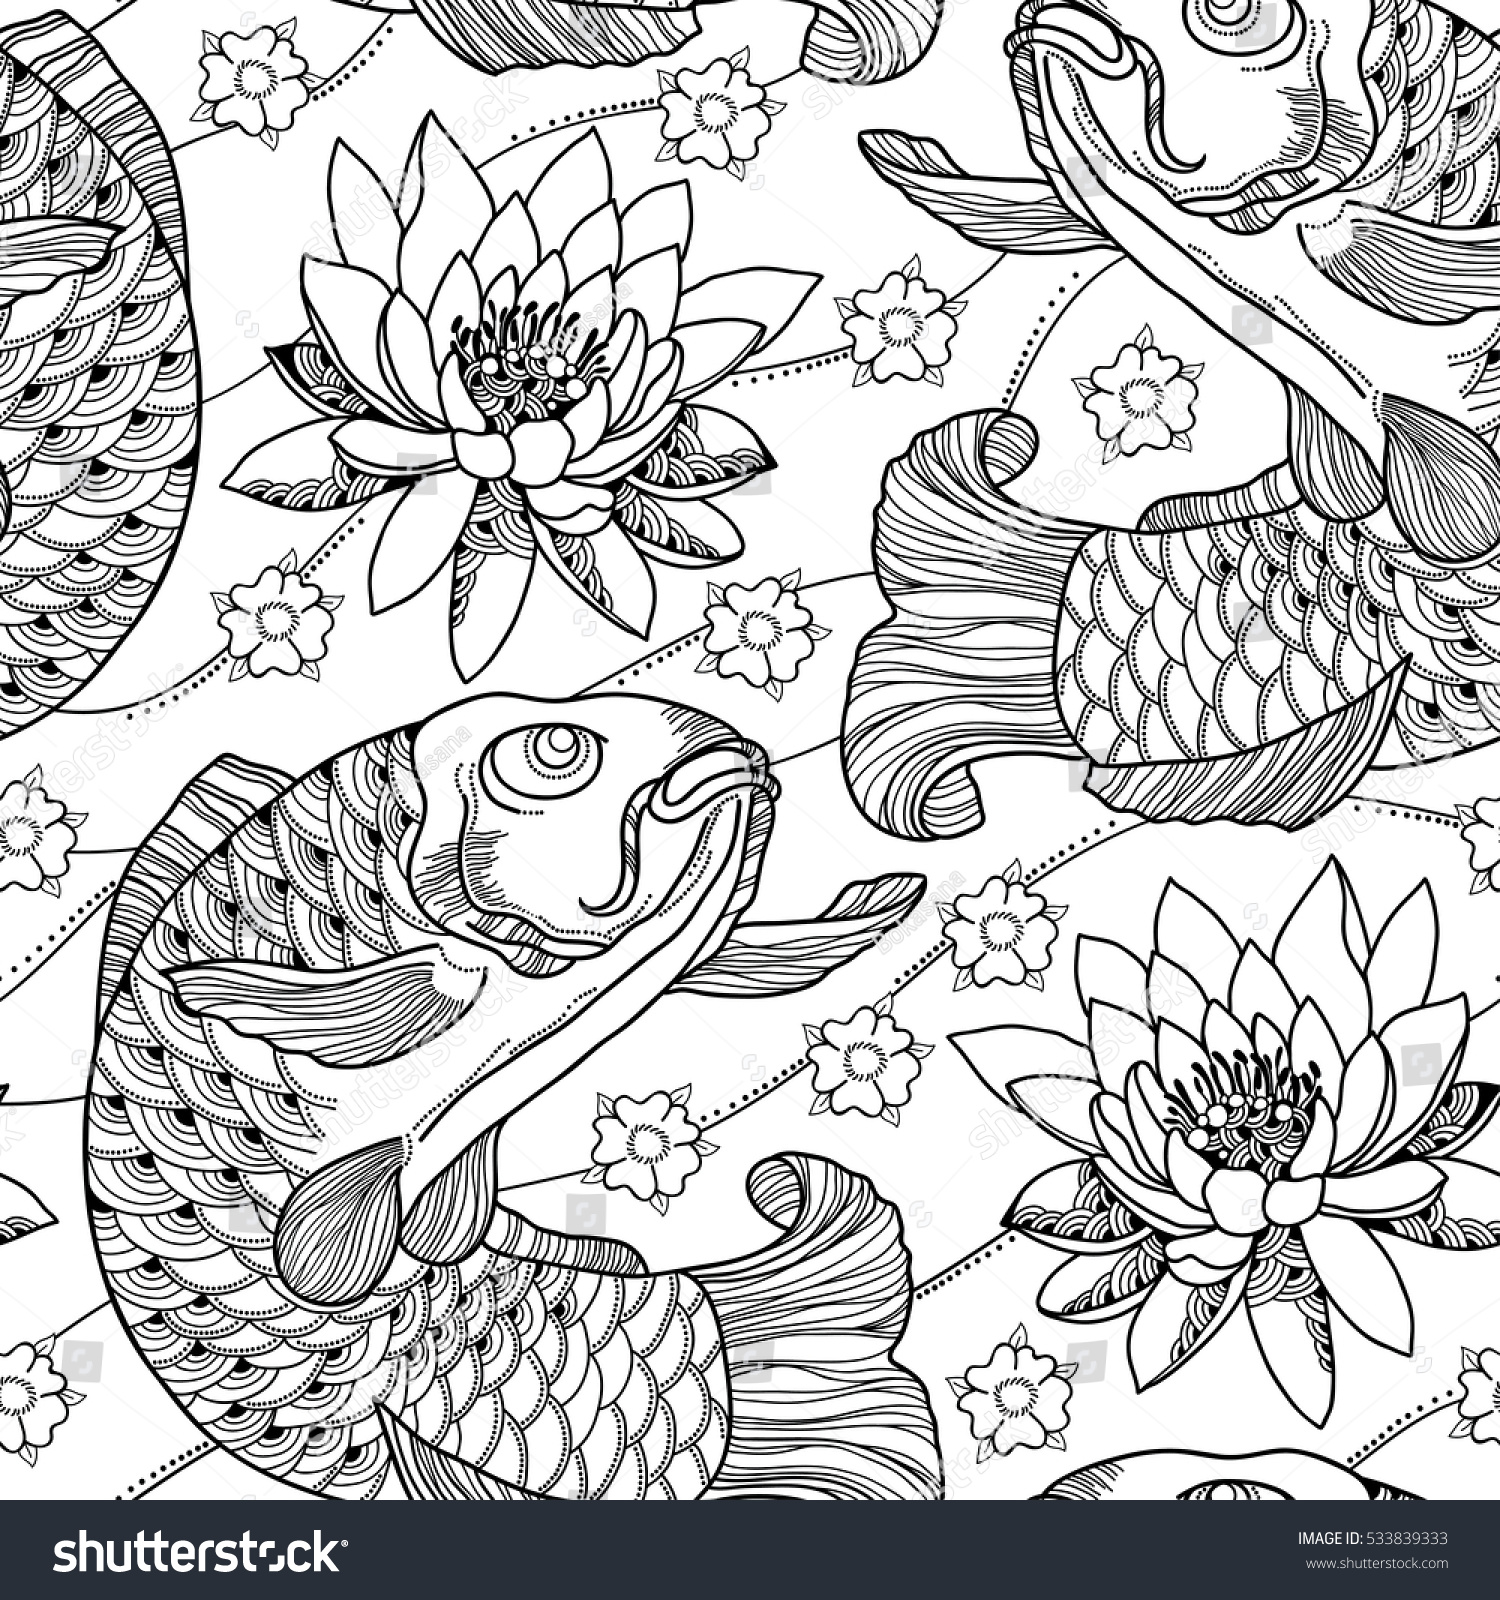 Lotus designs coloring book - Vector Seamless Pattern With Outline Koi Carp And Lotus Or Water Lily In Black On The